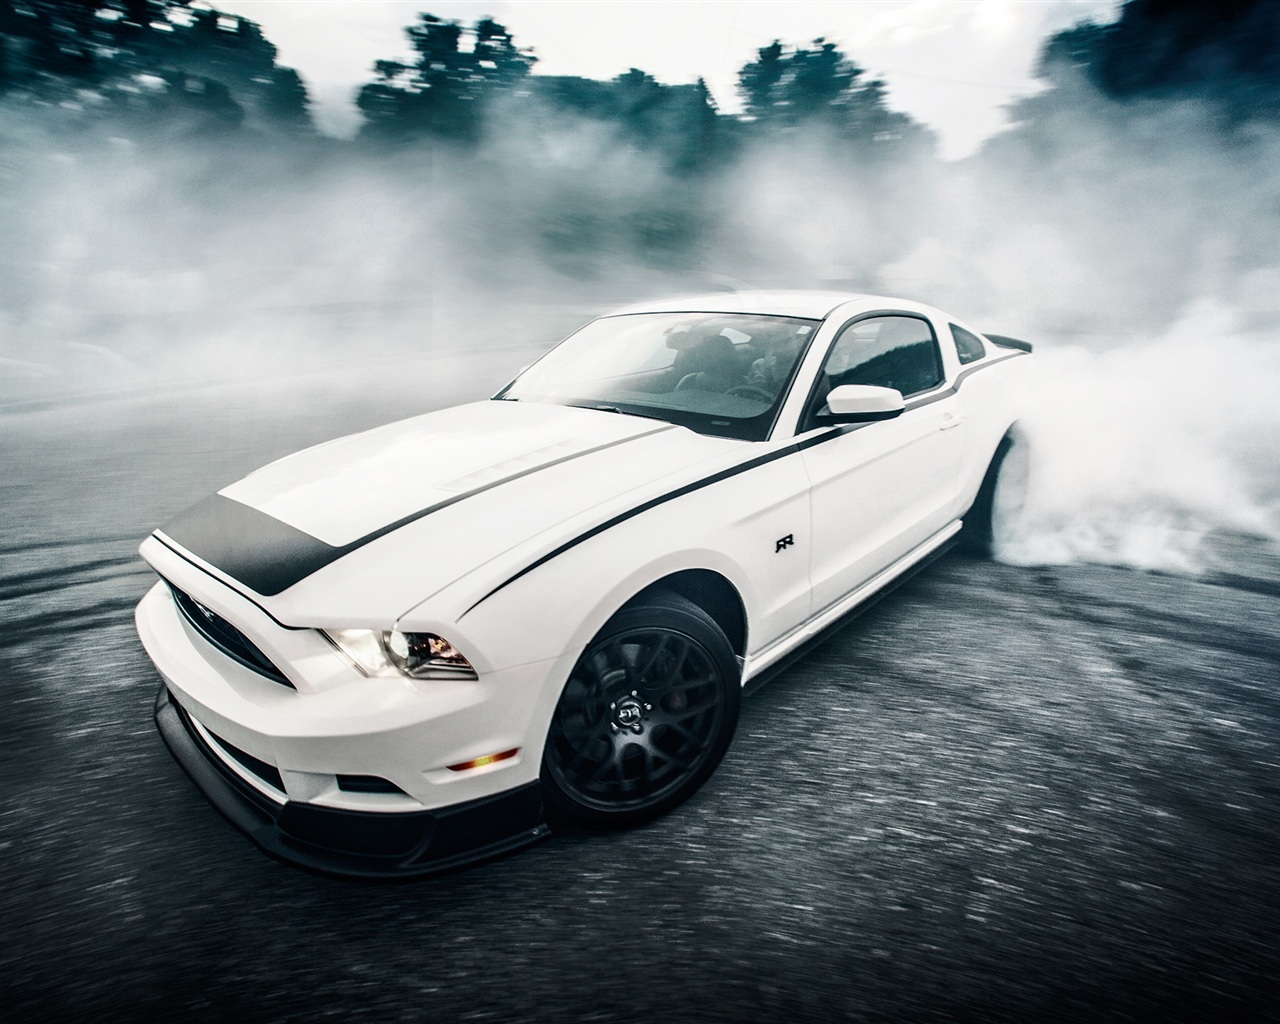 Wallpaper Ford Mustang Sports Car 2560x1440 Qhd Picture Image